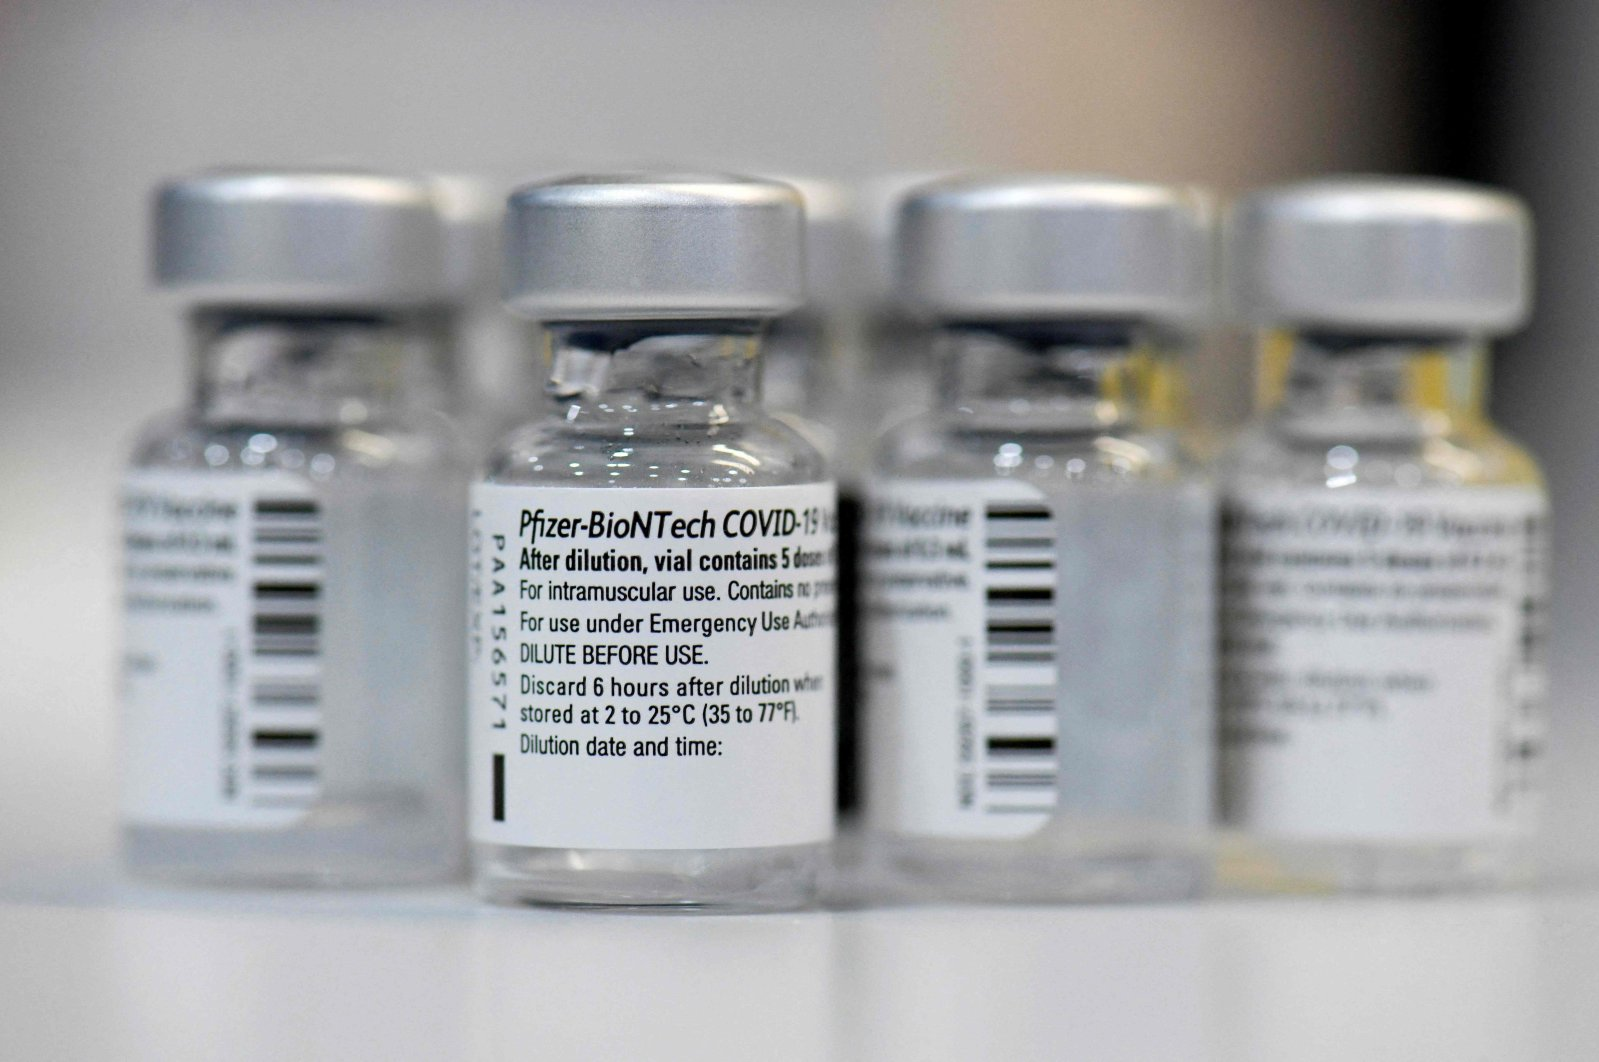 Empty vials of the Pfizer-BioNTech COVID-19 disease vaccine are displayed at the regional coronavirus vaccination center in Ludwigsburg, southern Germany, Jan. 22, 2021. (AFP Photo)